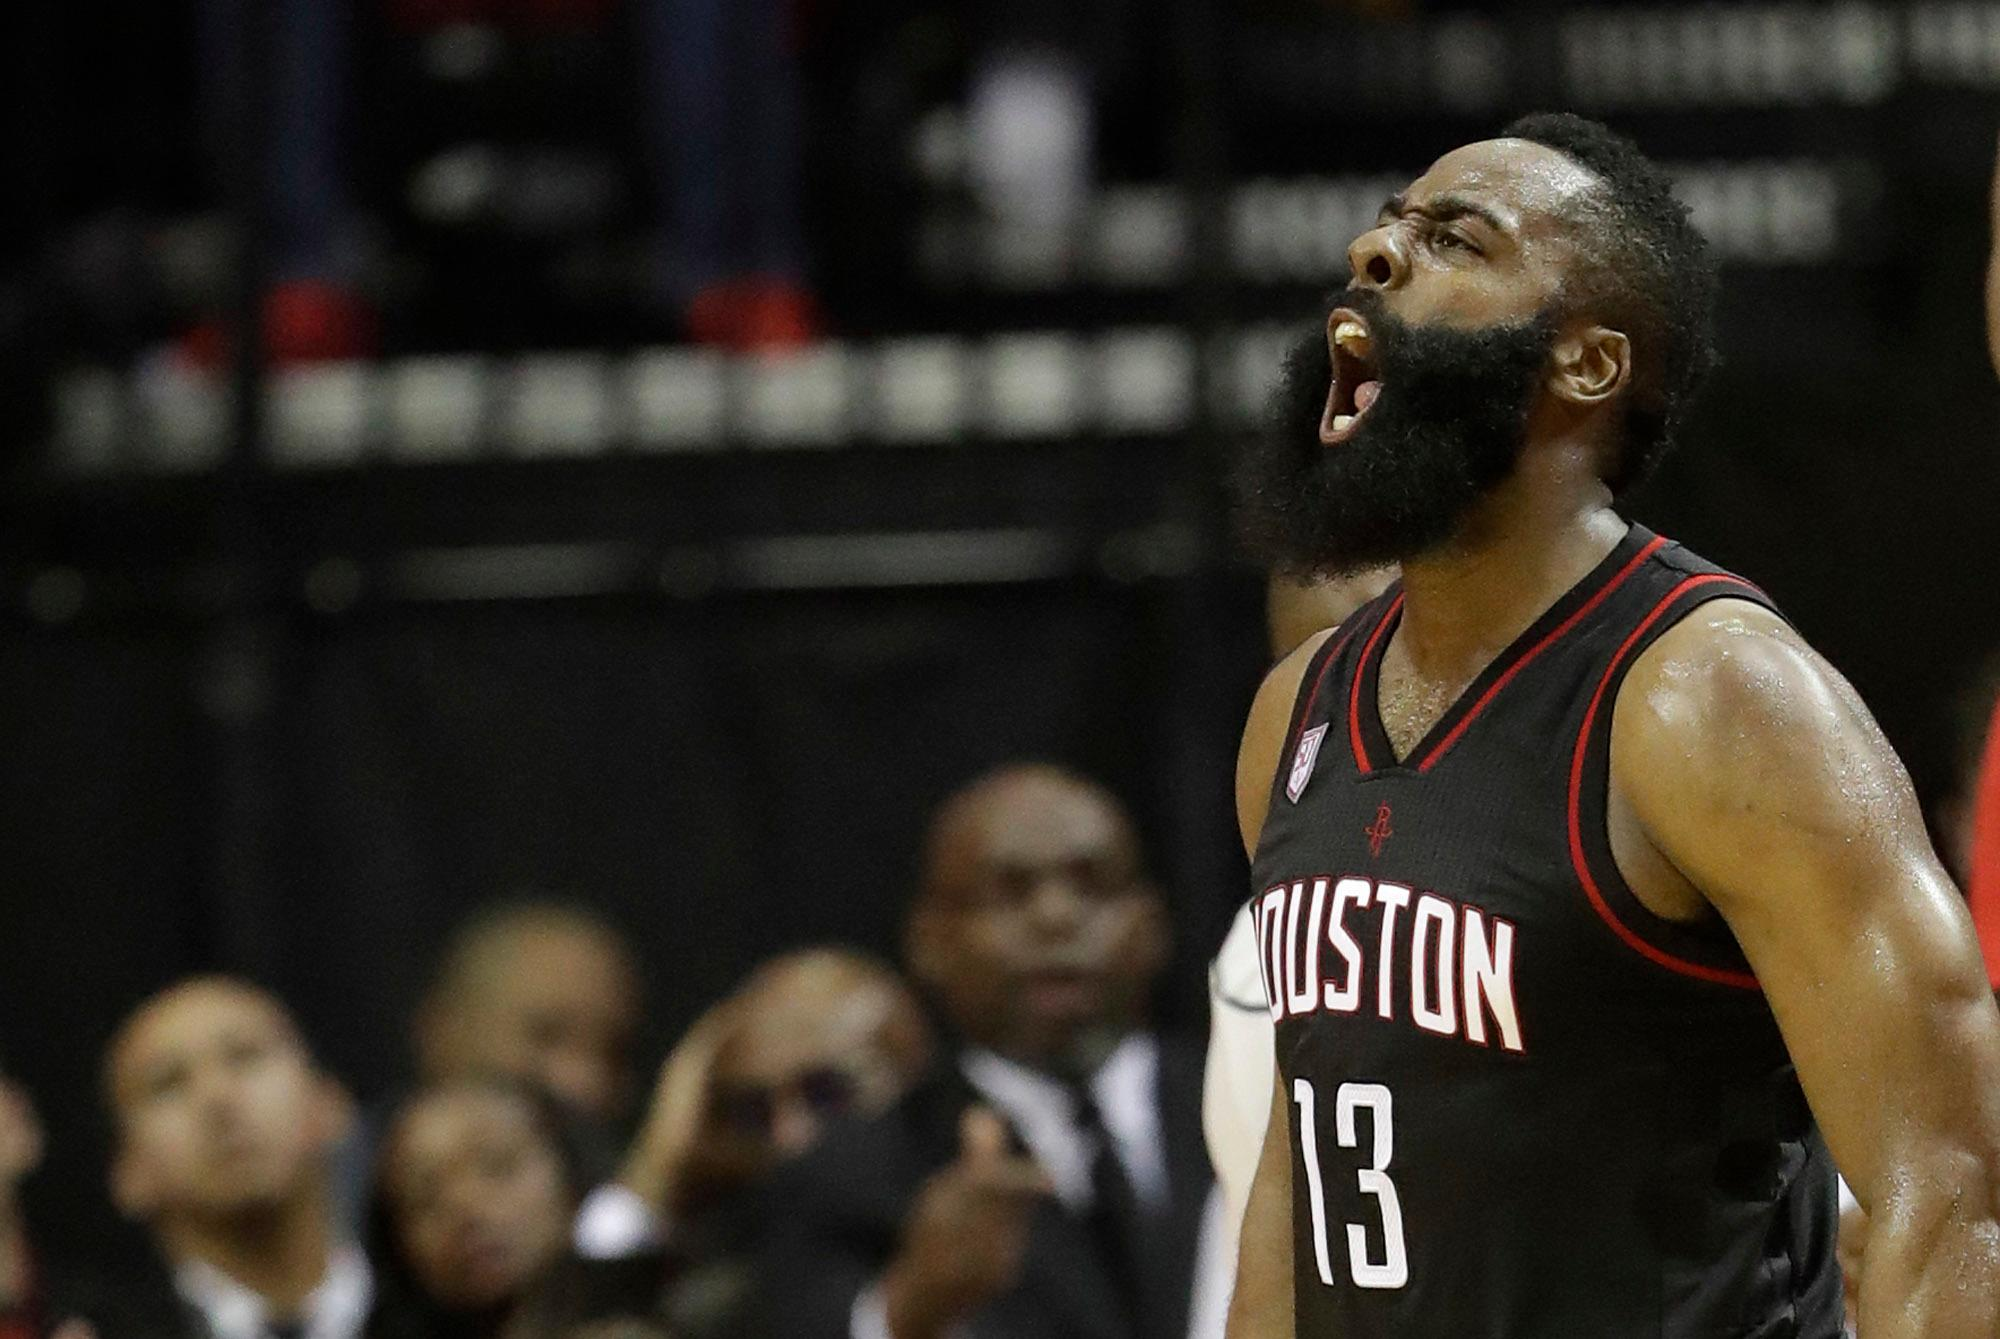 Houston Rockets' James Harden yells after a Oklahoma City Thunder turnover during the second half in Game 1 of an NBA basketball first-round playoff series, Sunday, April 16, 2017, in Houston. (AP Photo/David J. Phillip)